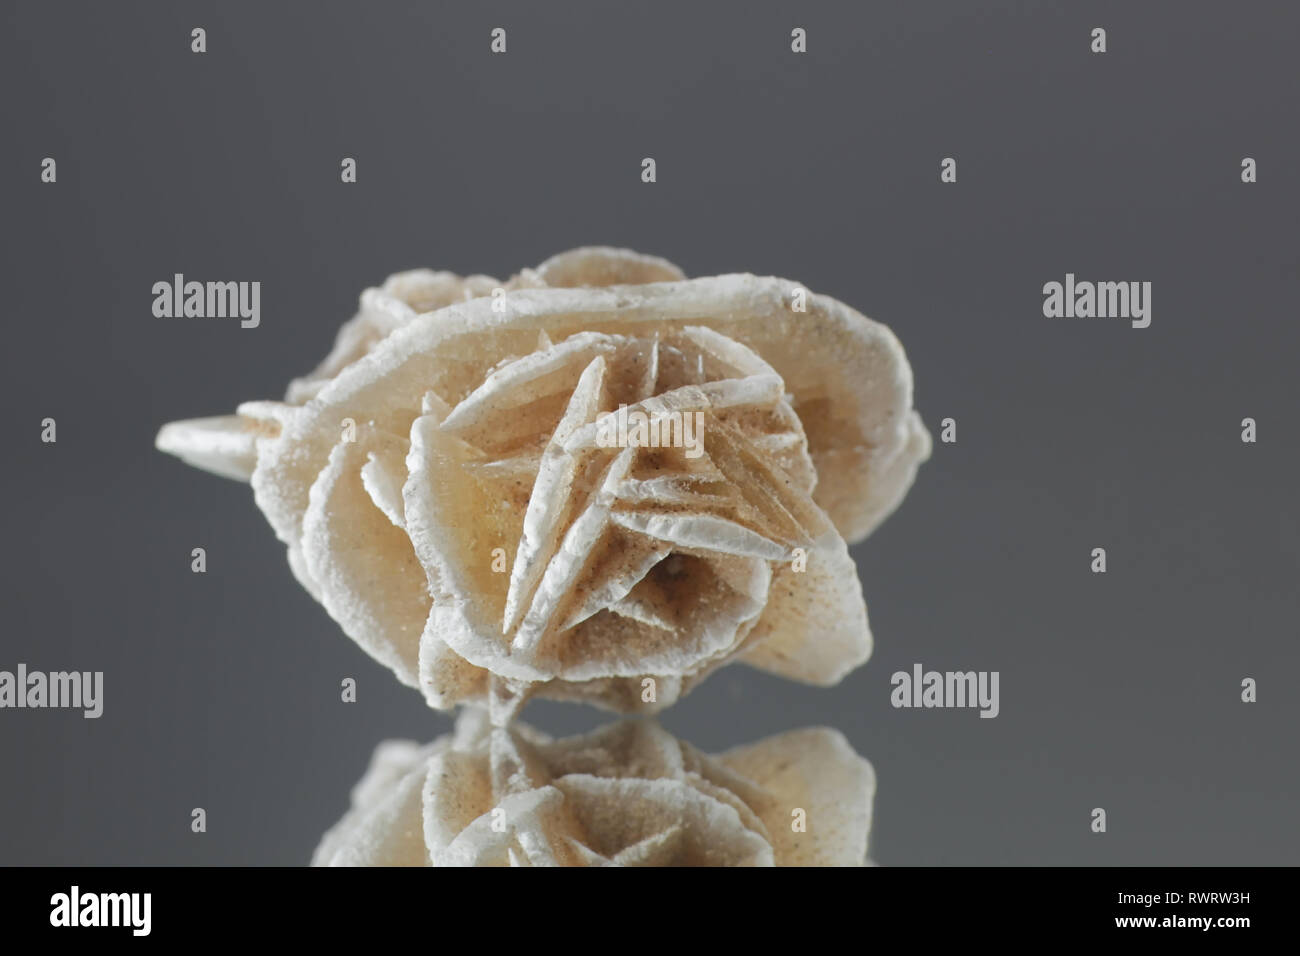 Desert rose is the name given to rose-like formations of crystal clusters of gypsum or baryte. - Stock Image